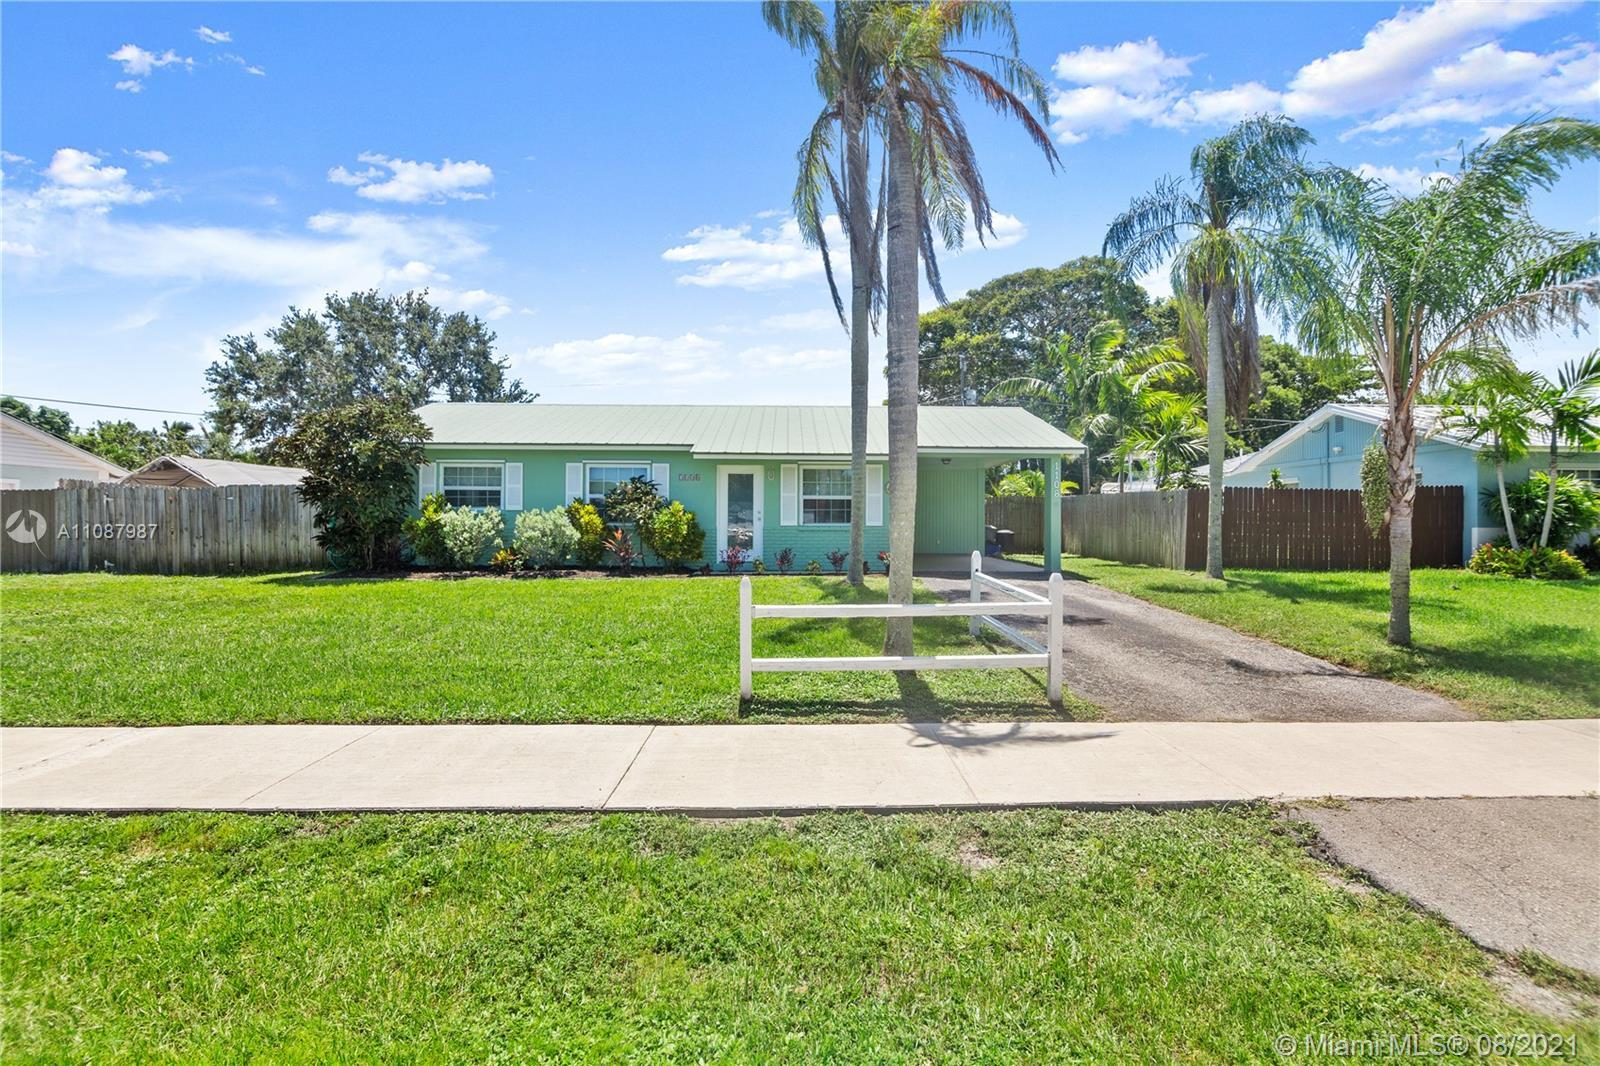 Darling 3/1 on great street! 2nd bath can be added (plumbing is ez access), outdoor shower, carport/